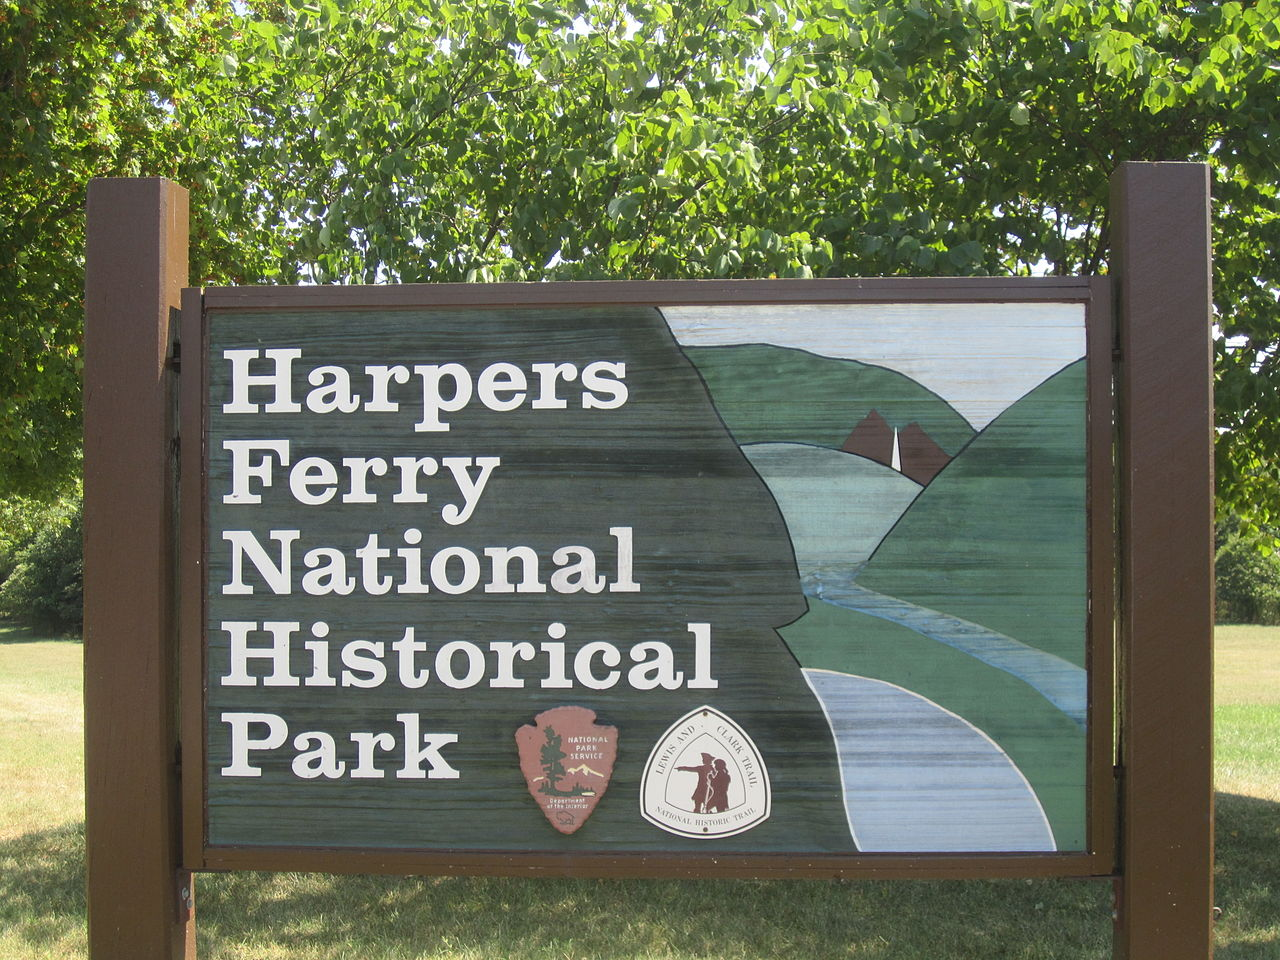 harpers ferry dating 107 reviews of harpers ferry national historic park the historical town of harper's ferry is a perfect stop for hikers, history buffs, and everyone else where the states of maryland, virginia and west virginia all meet, divided by the potomac and.